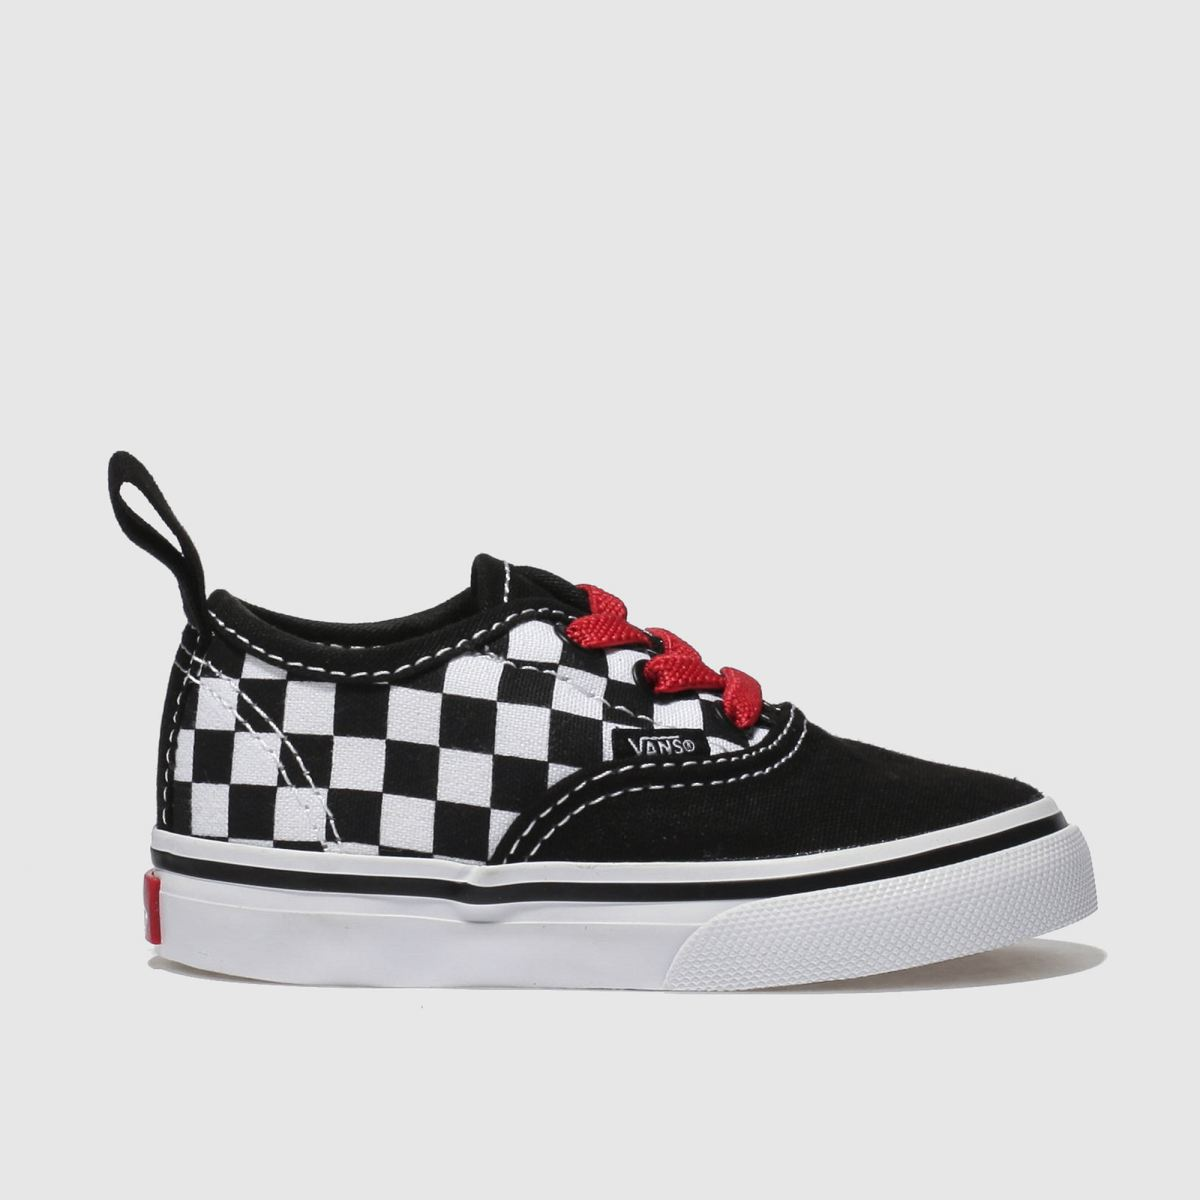 Vans Black & White Authentic Elastic Lace Unisex Toddler Toddler